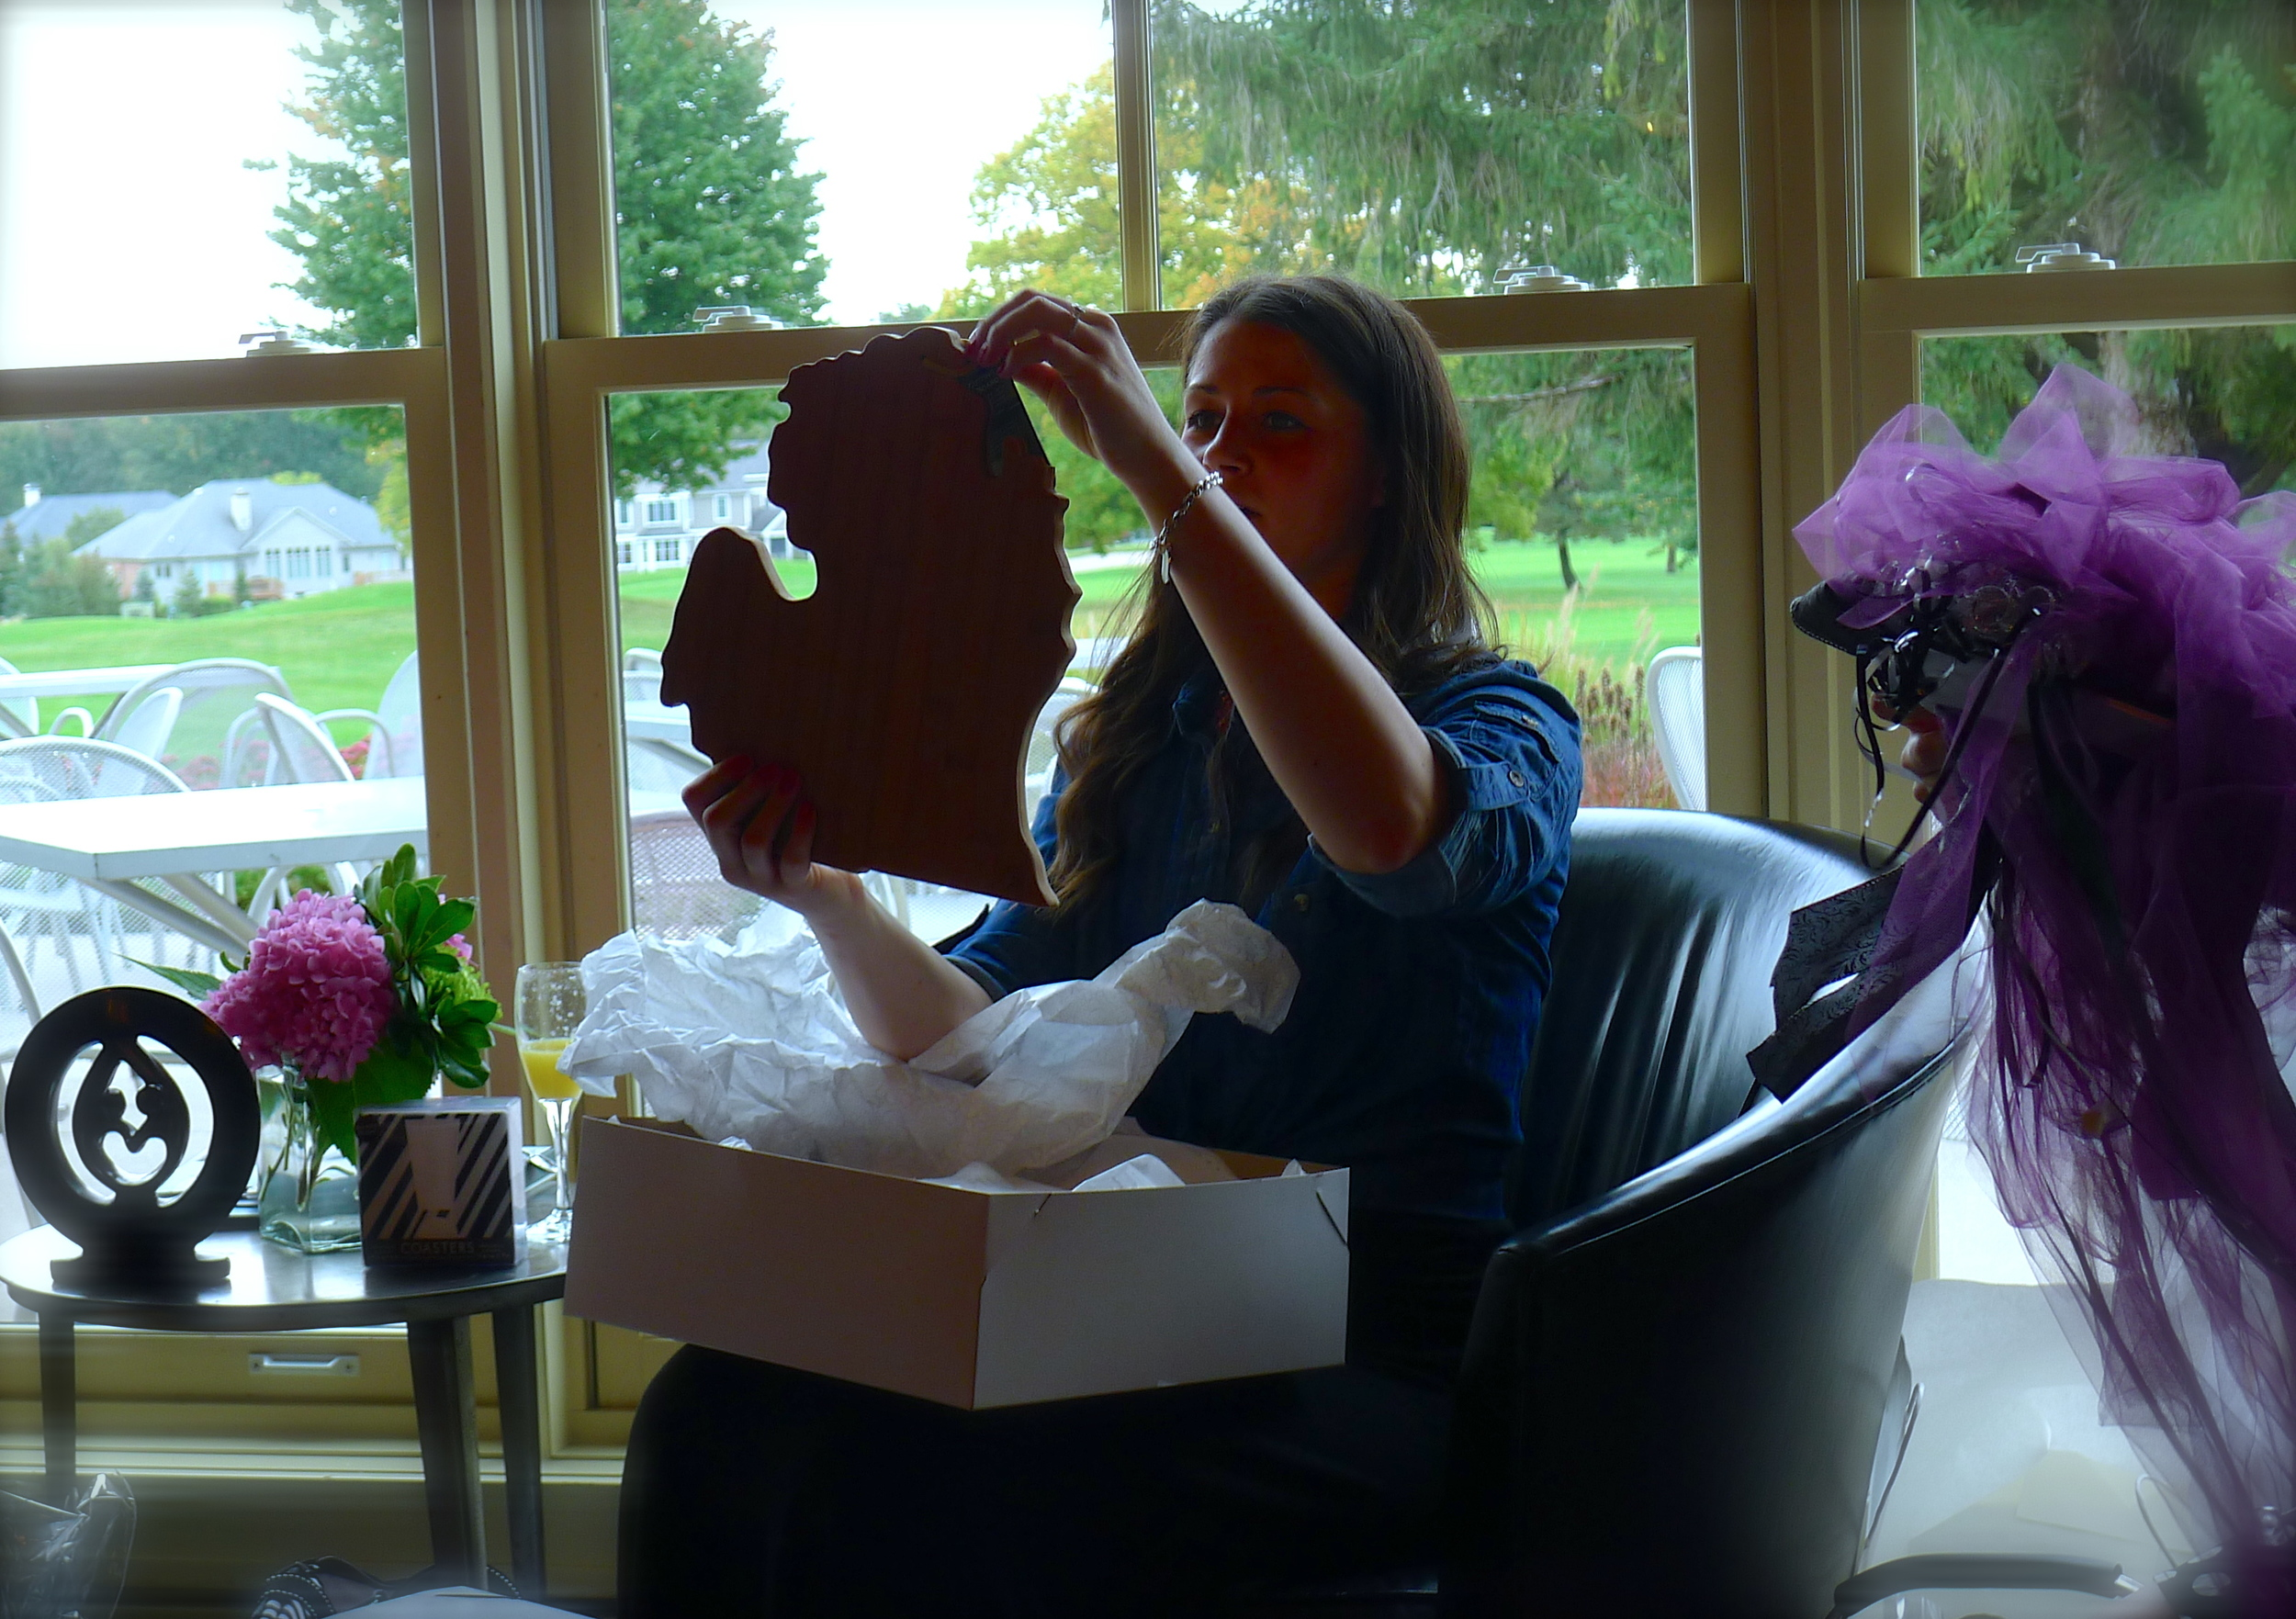 OPENING GIFTS ON SATURDAY OCT. 5 AT WATERMARK COUNTRY CLUB